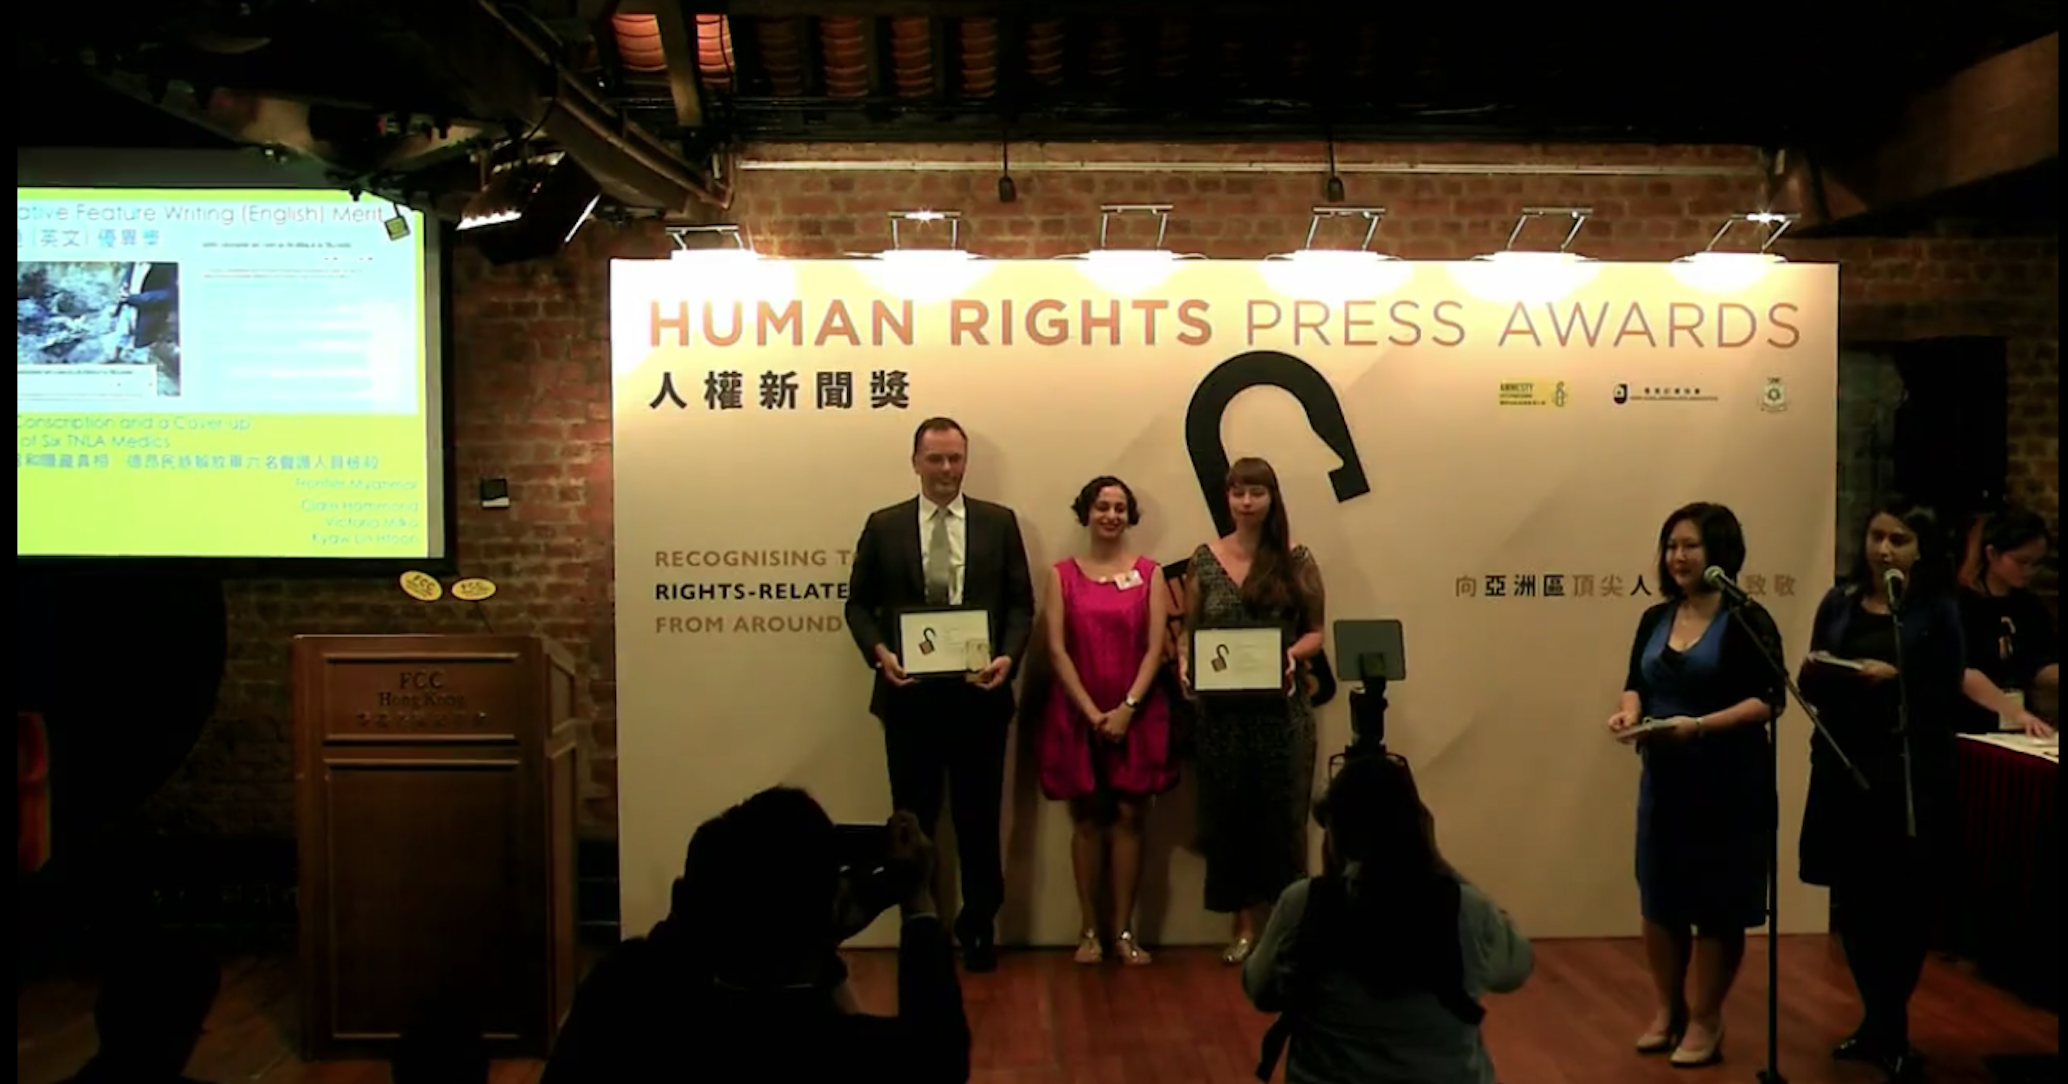 On stage for the Human Rights Press Awards in Hong Kong.